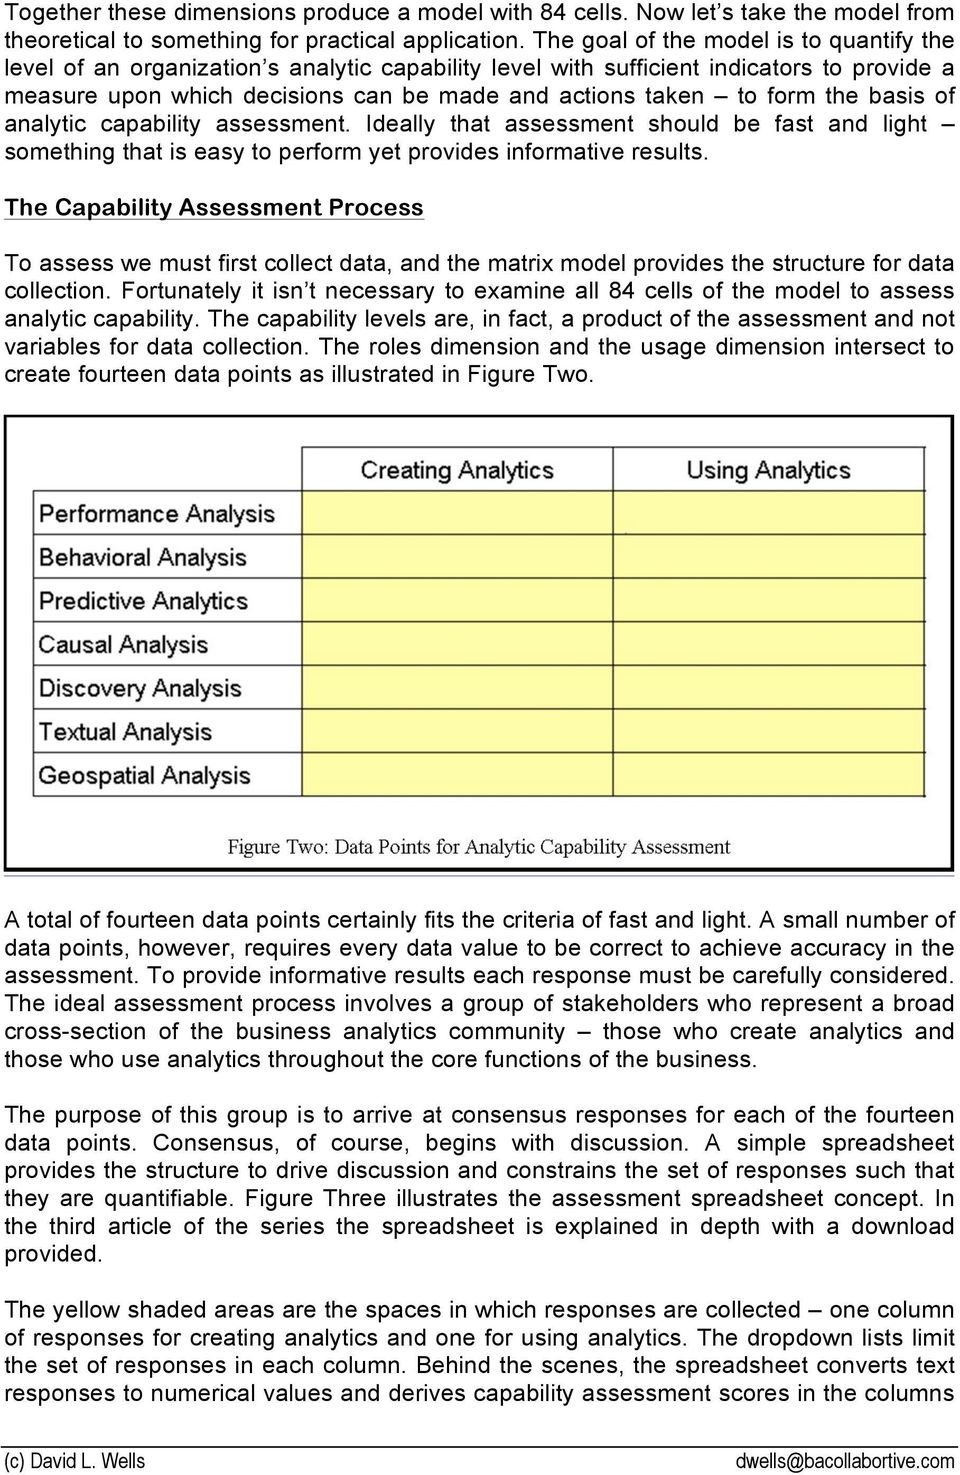 form the basis of analytic capability assessment. Ideally that assessment should be fast and light something that is easy to perform yet provides informative results.